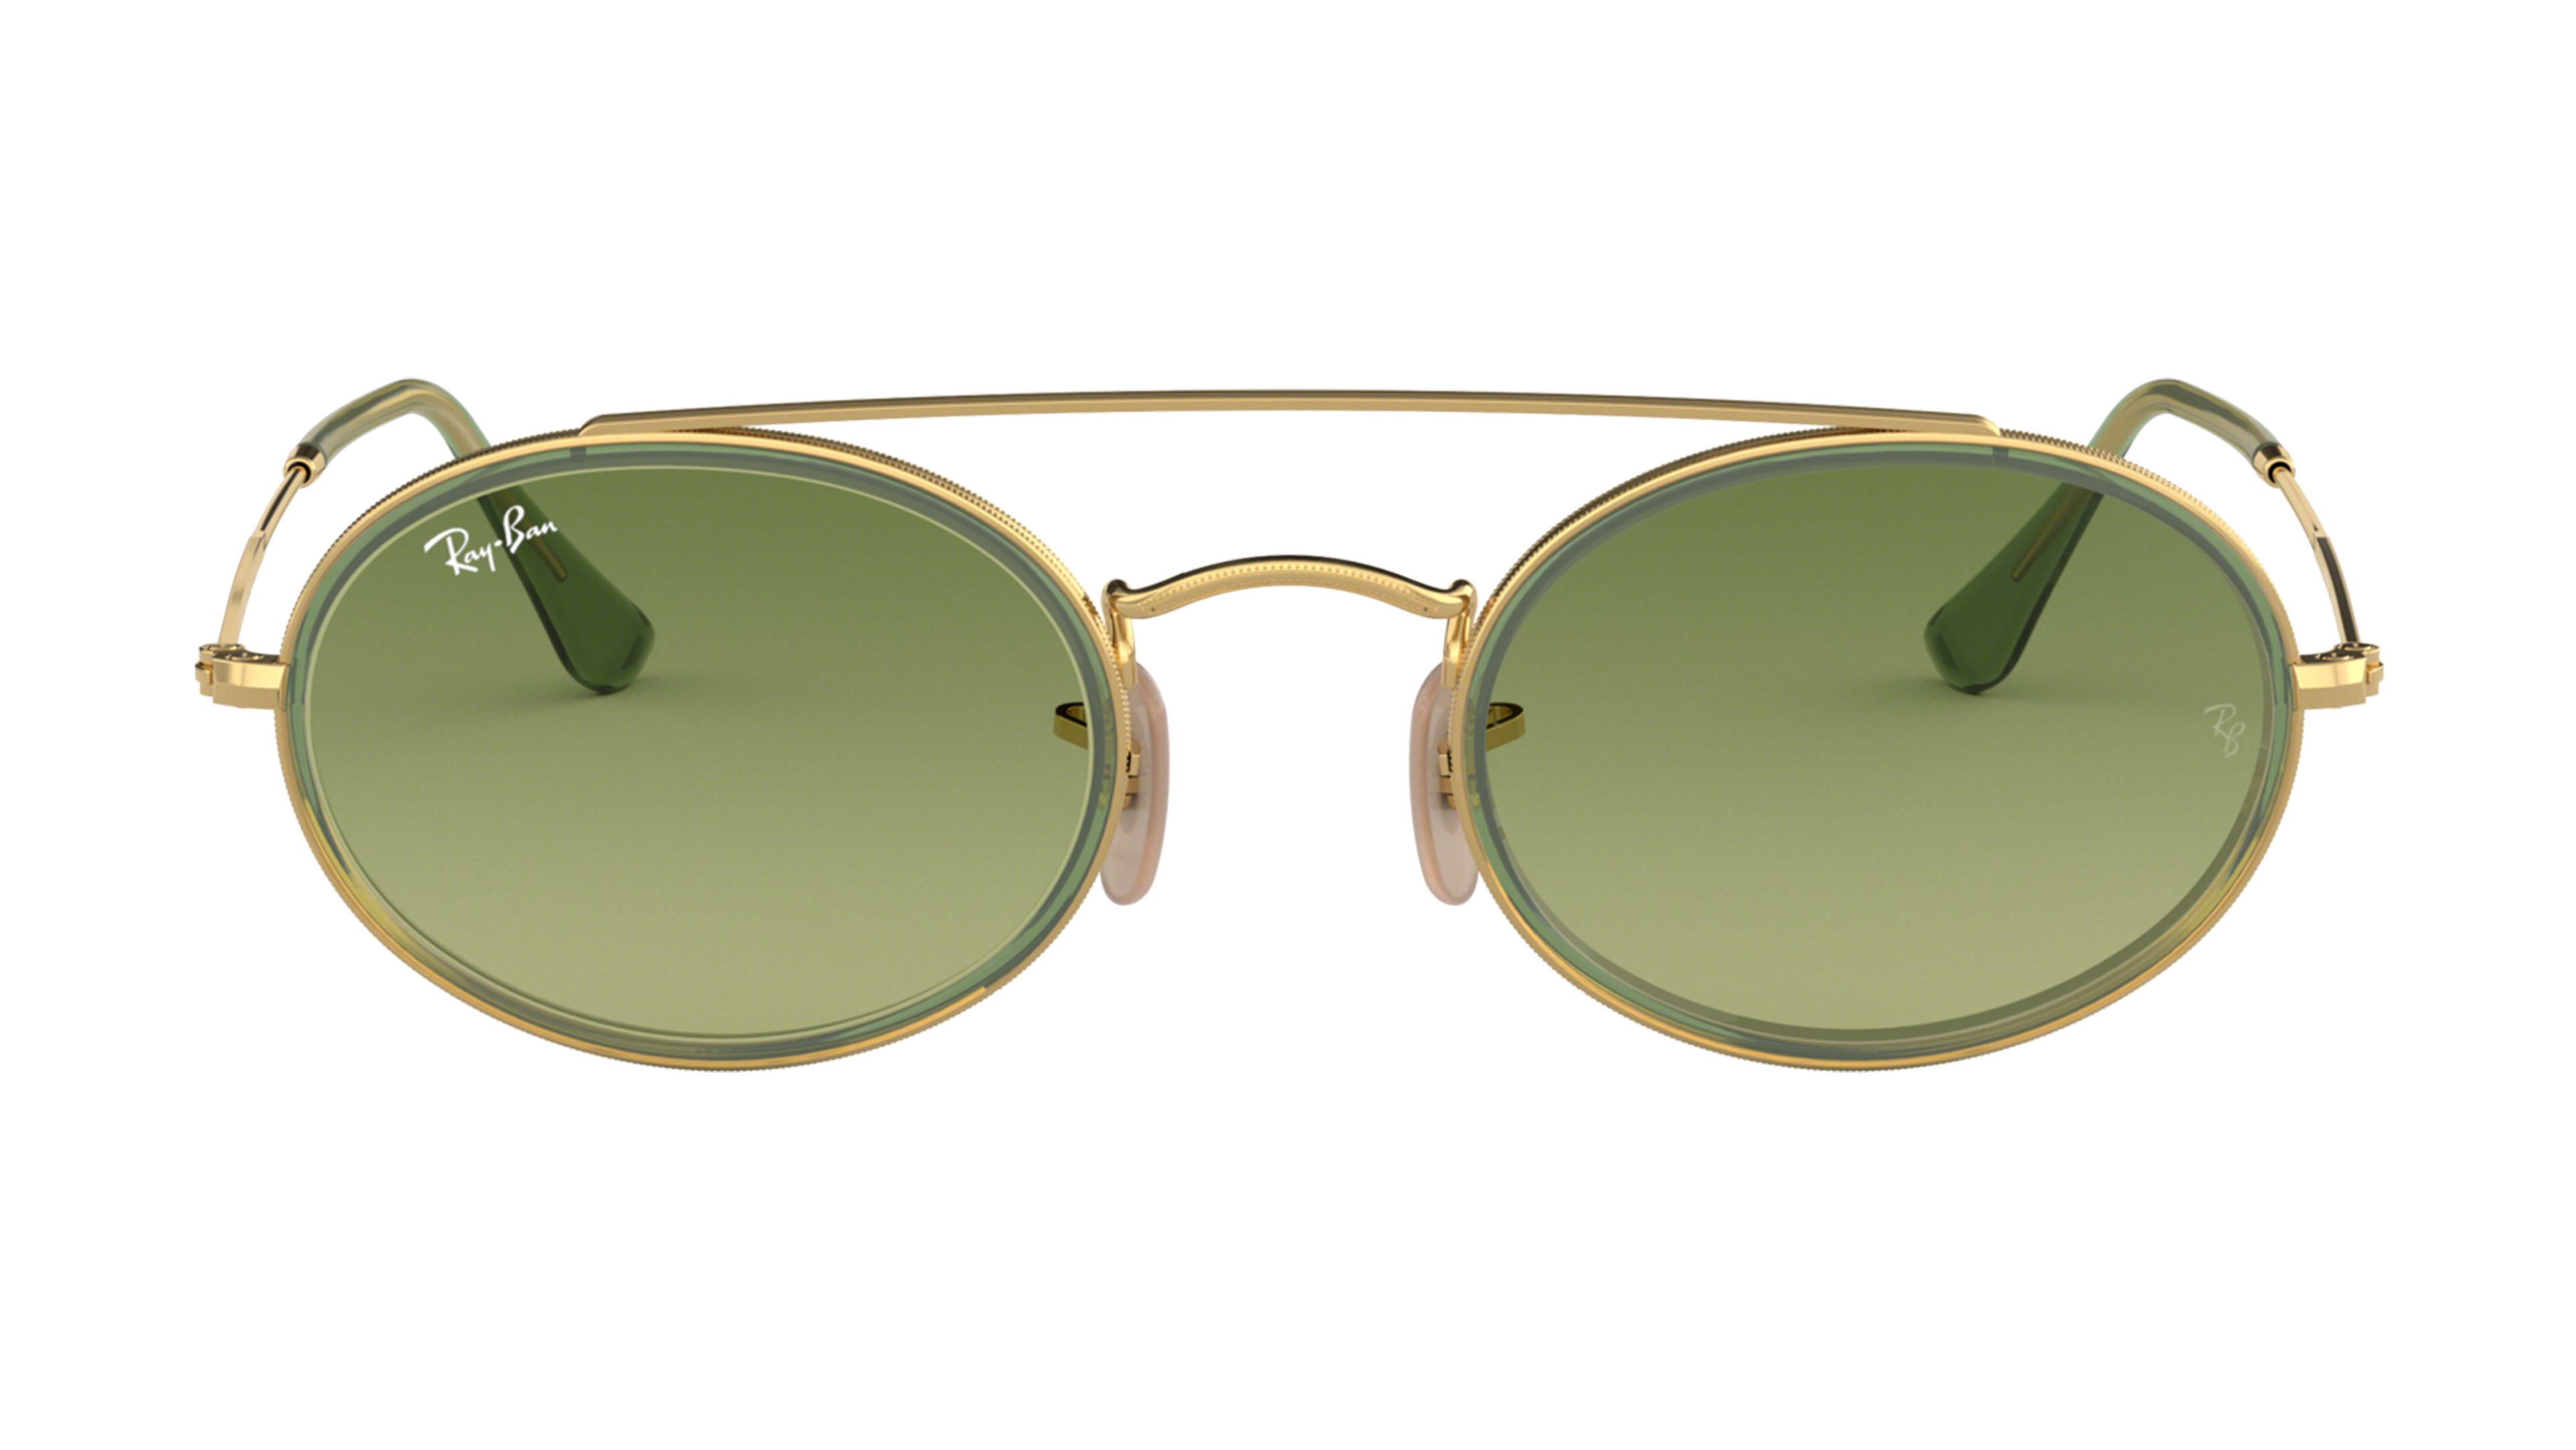 8053672970135-front-Ray-Ban-0RB3847N-91224M